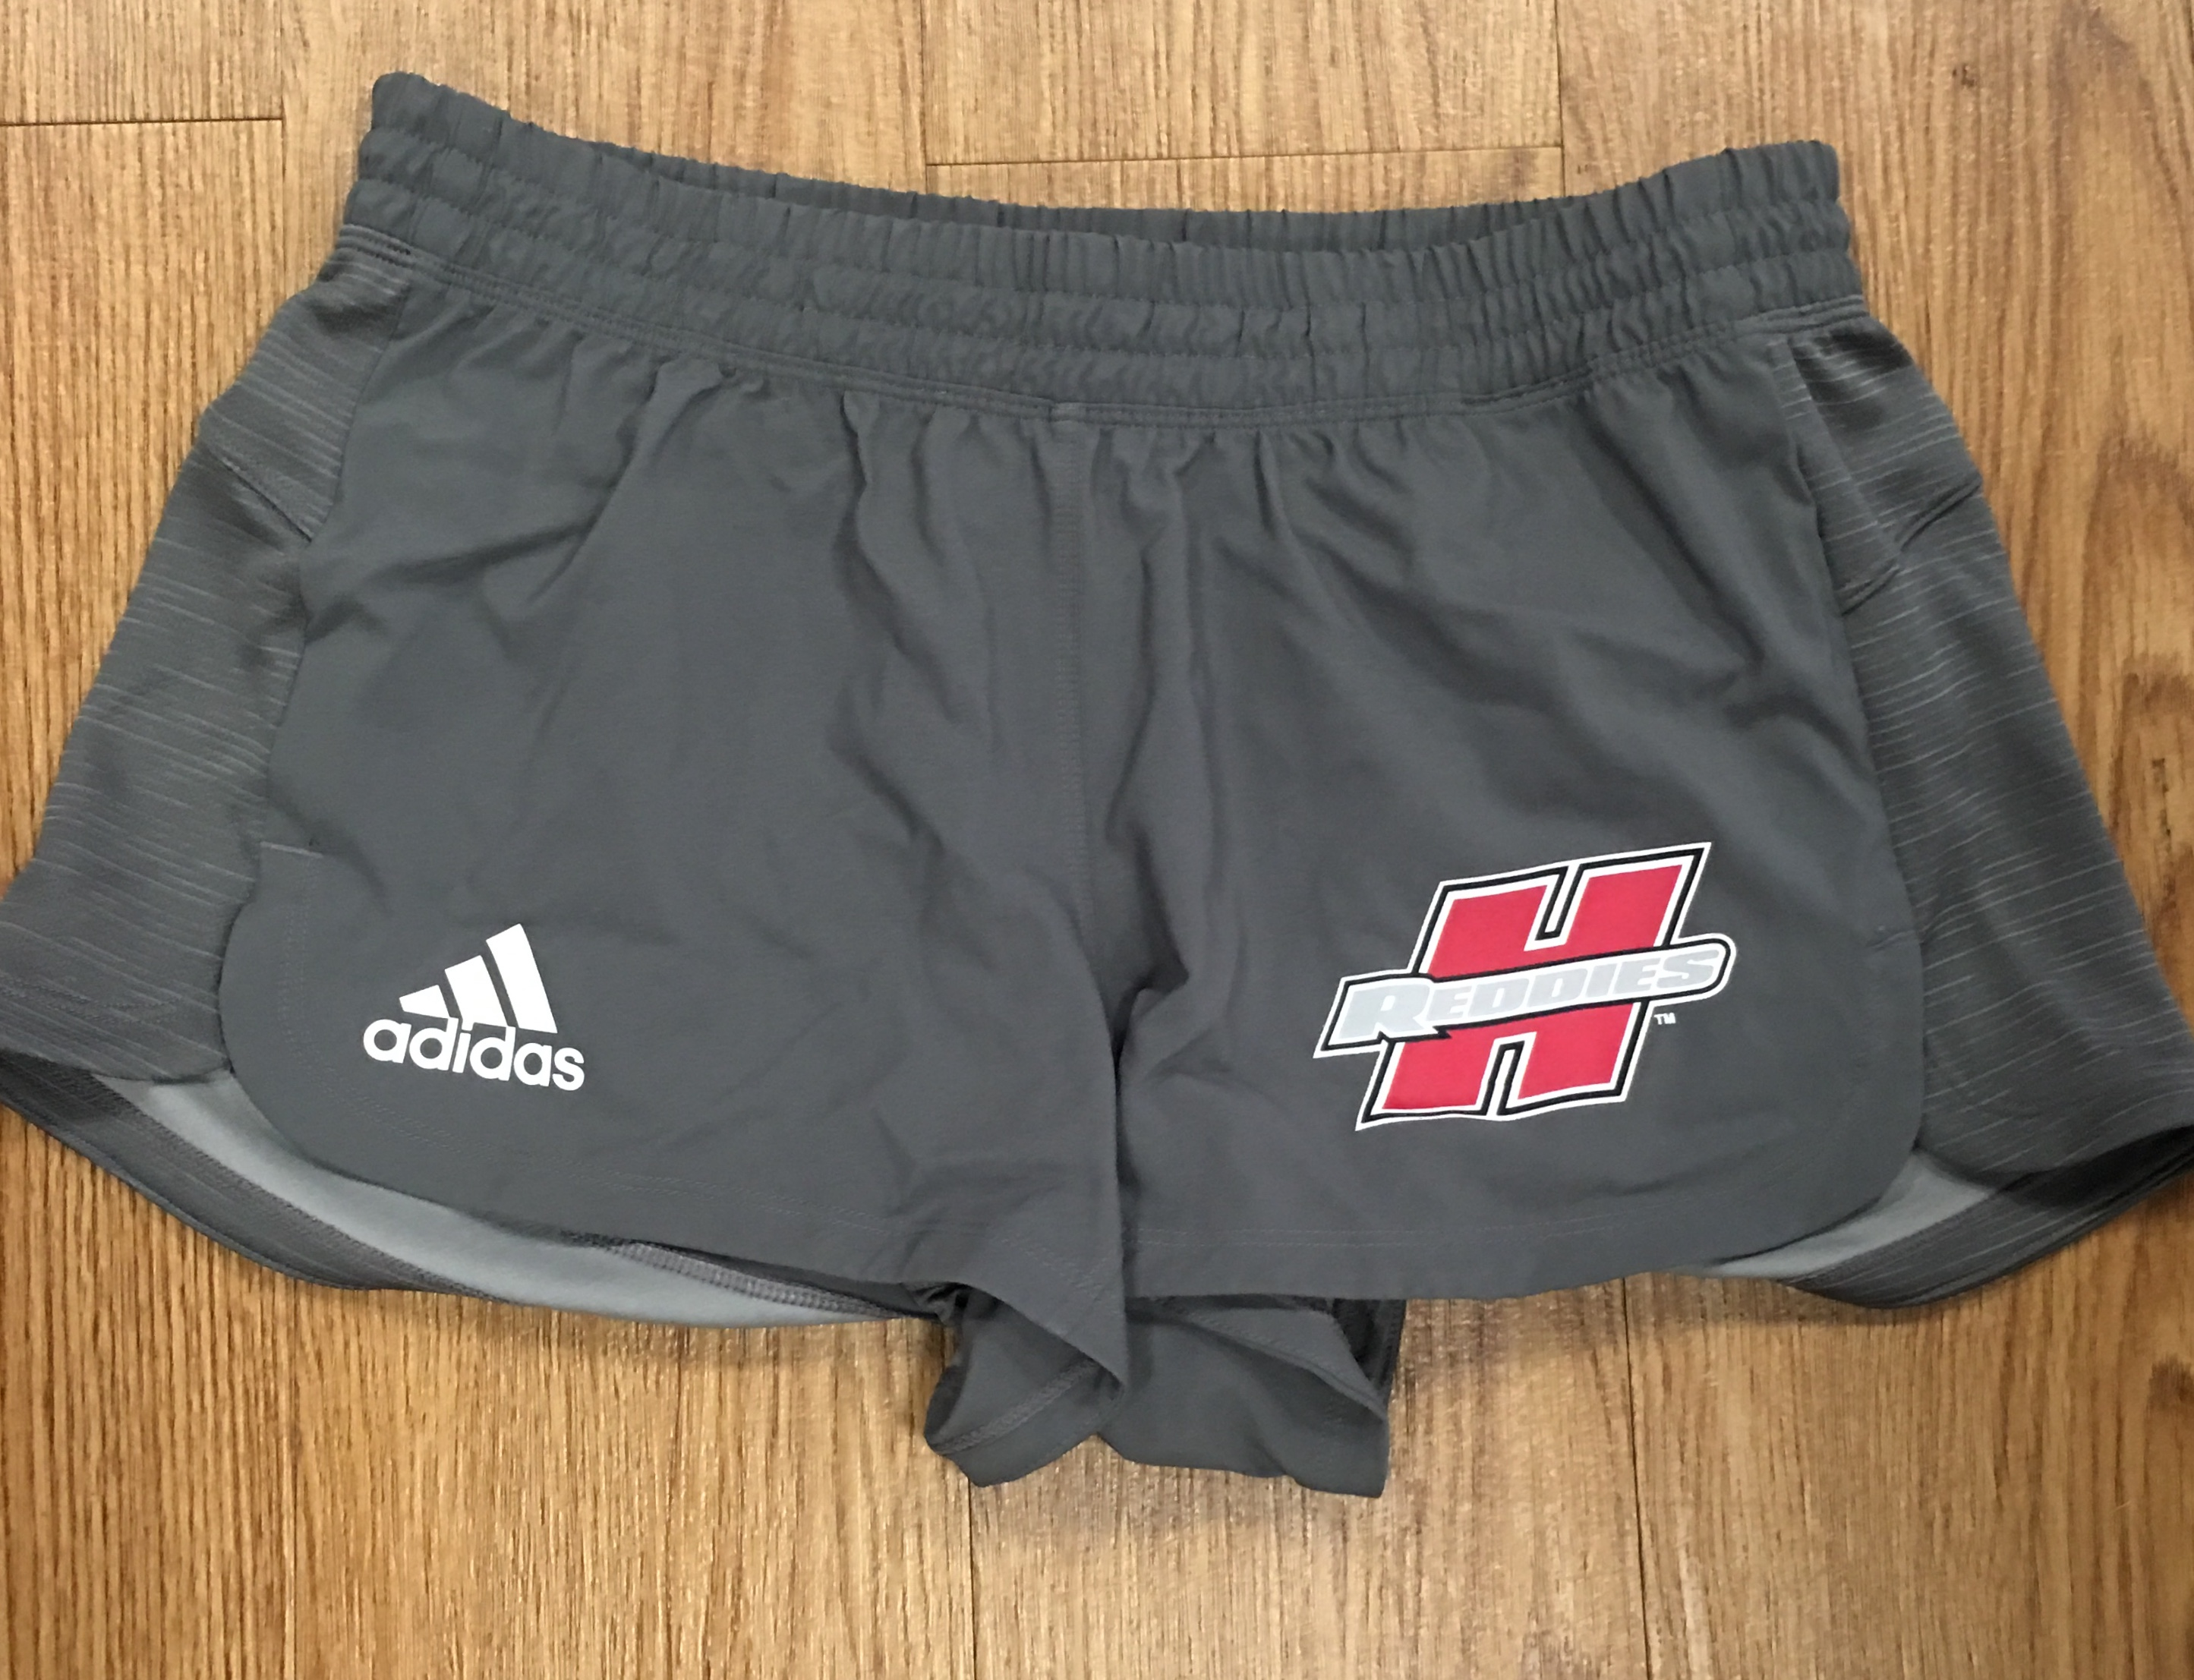 Henderson Reddies Game Mode Shorts